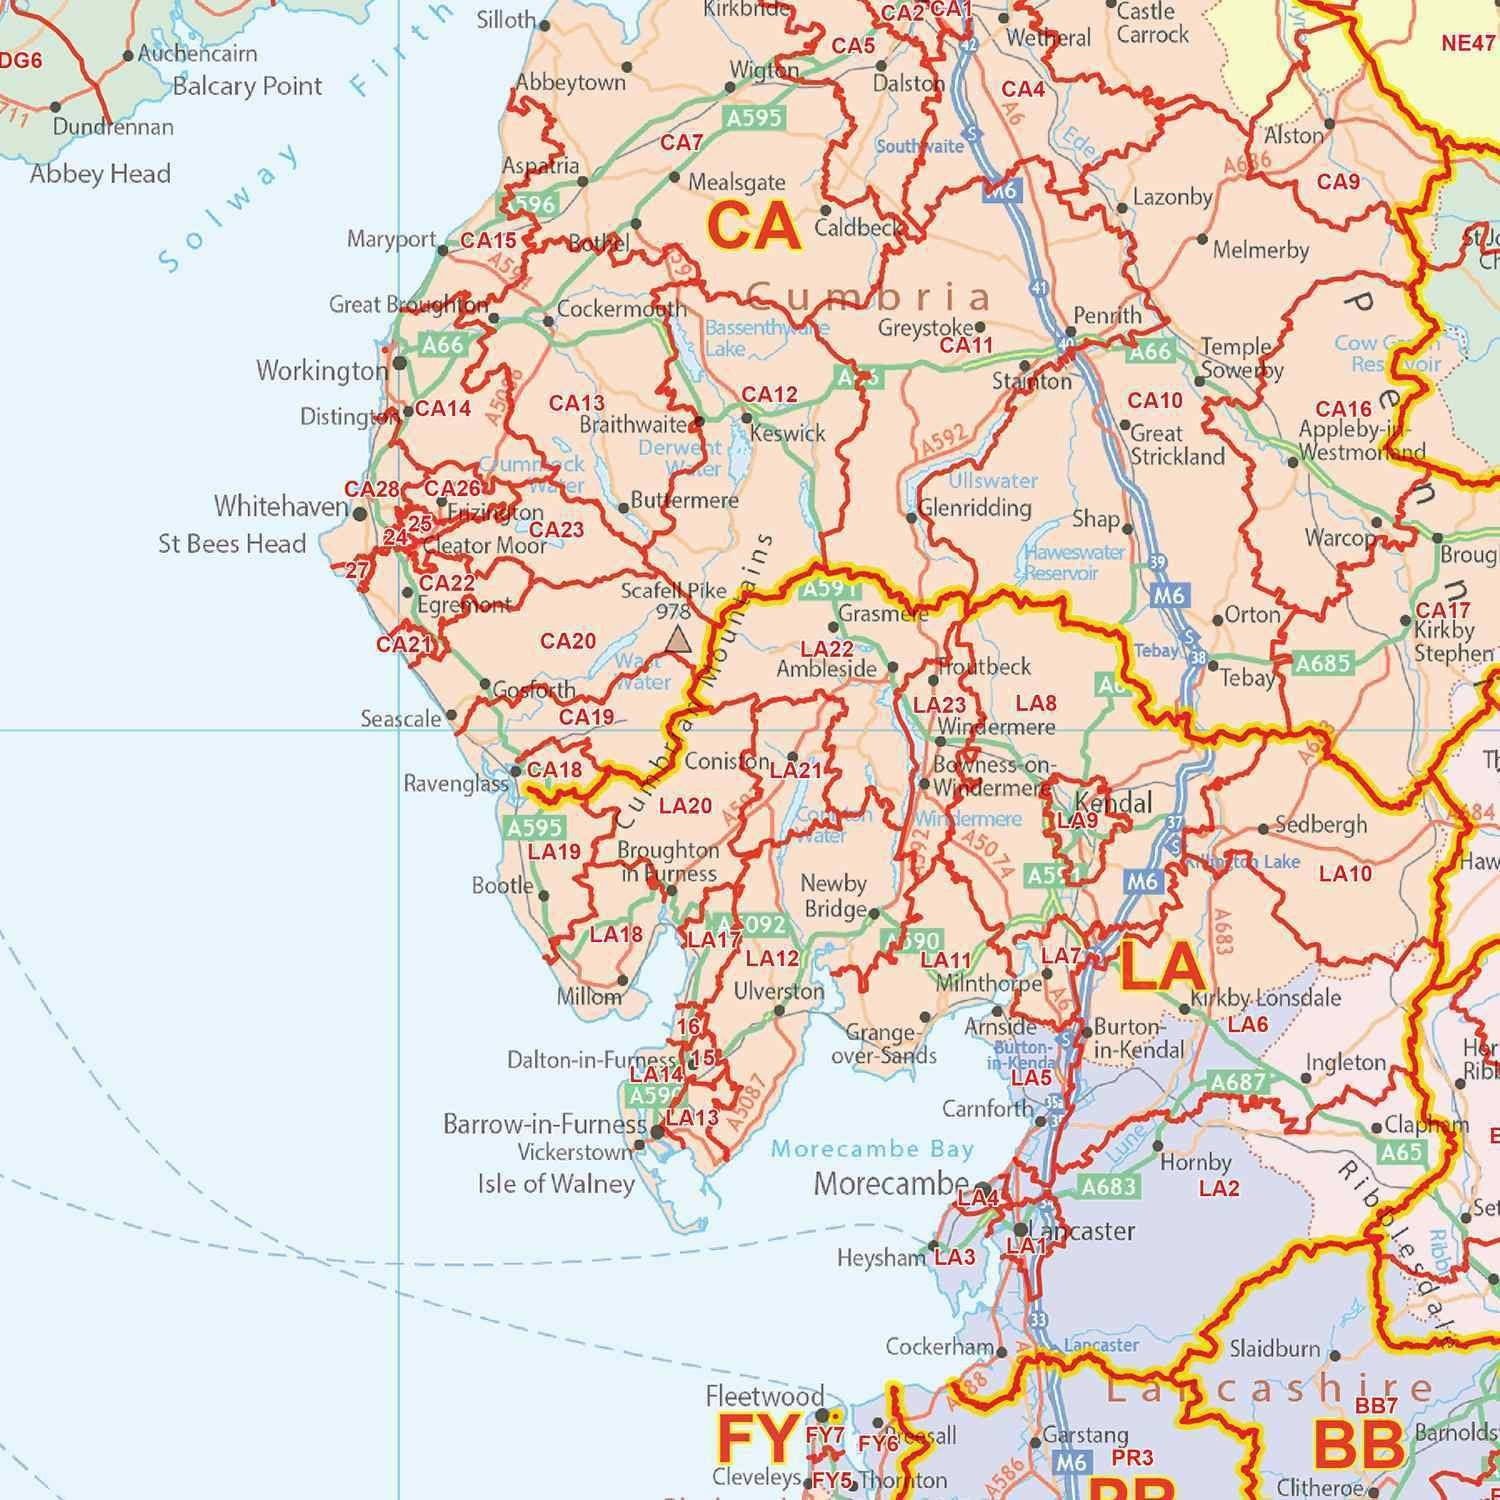 UK Postcode District Map GIF Or PDF Download  Map Logic - World map with latitude and longitude lines pdf